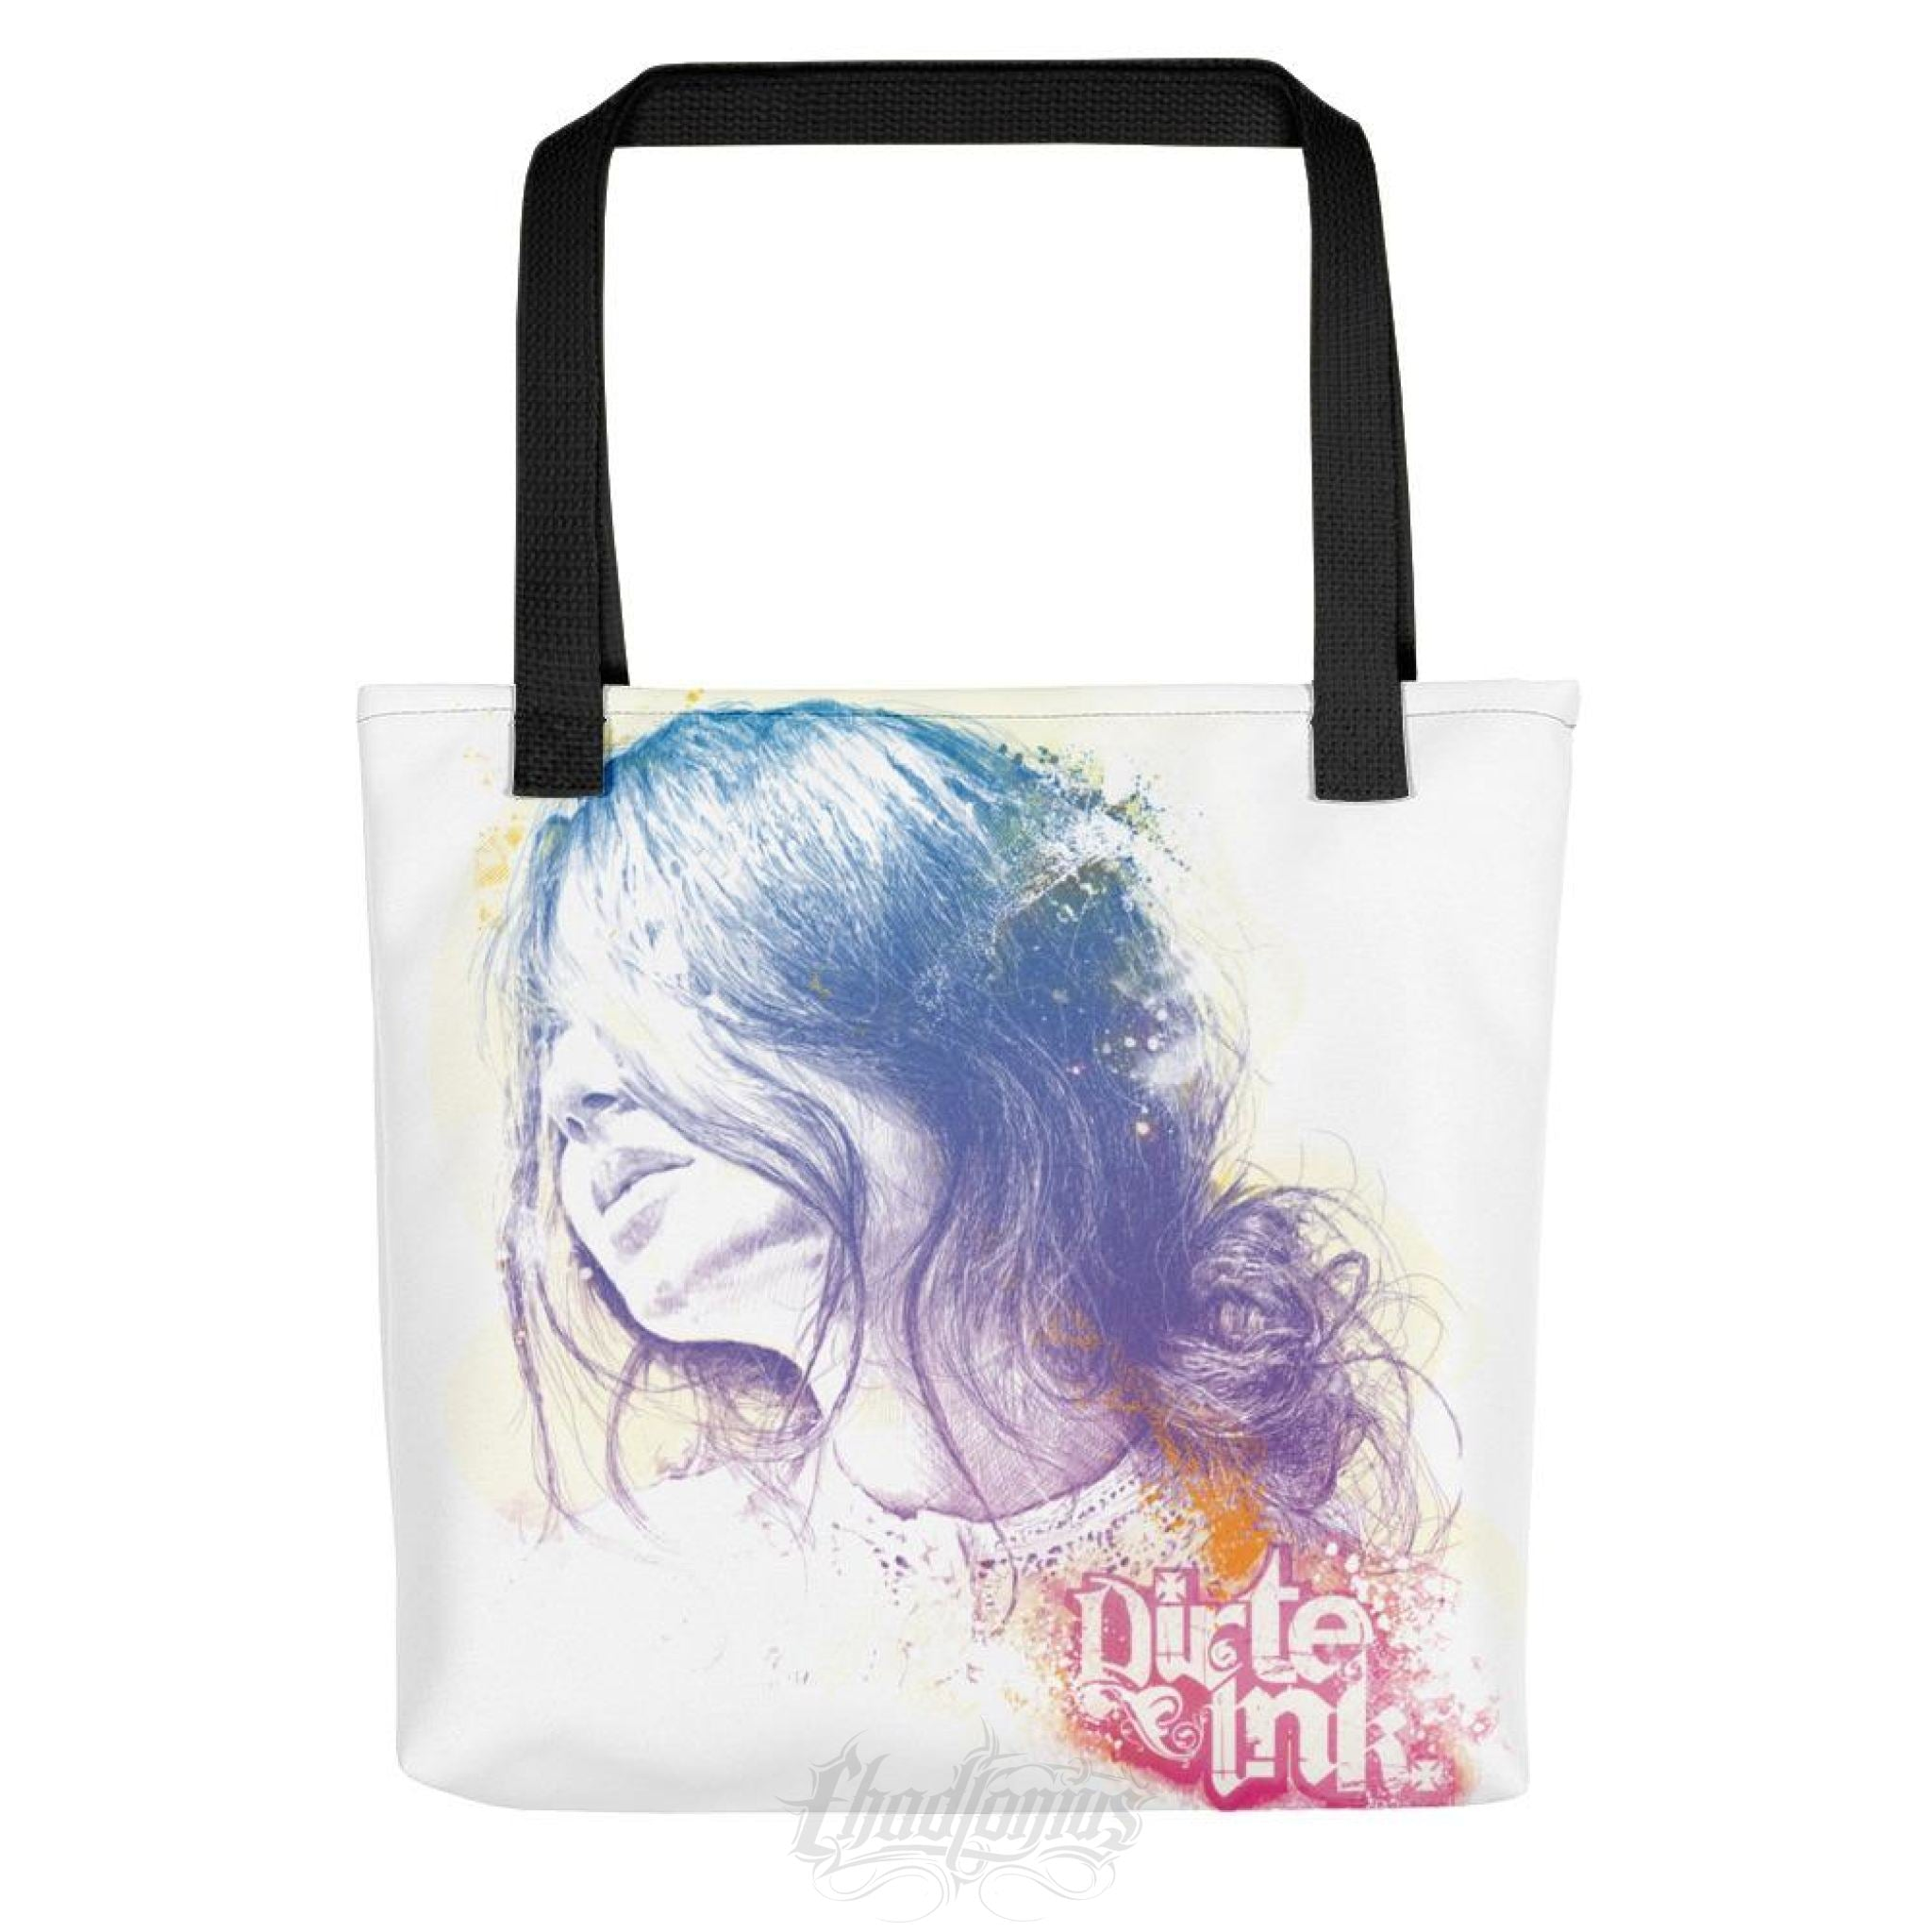 Dirte Inke - Memory Of A Moment - Tote Bag Tote Bags Chadlonius